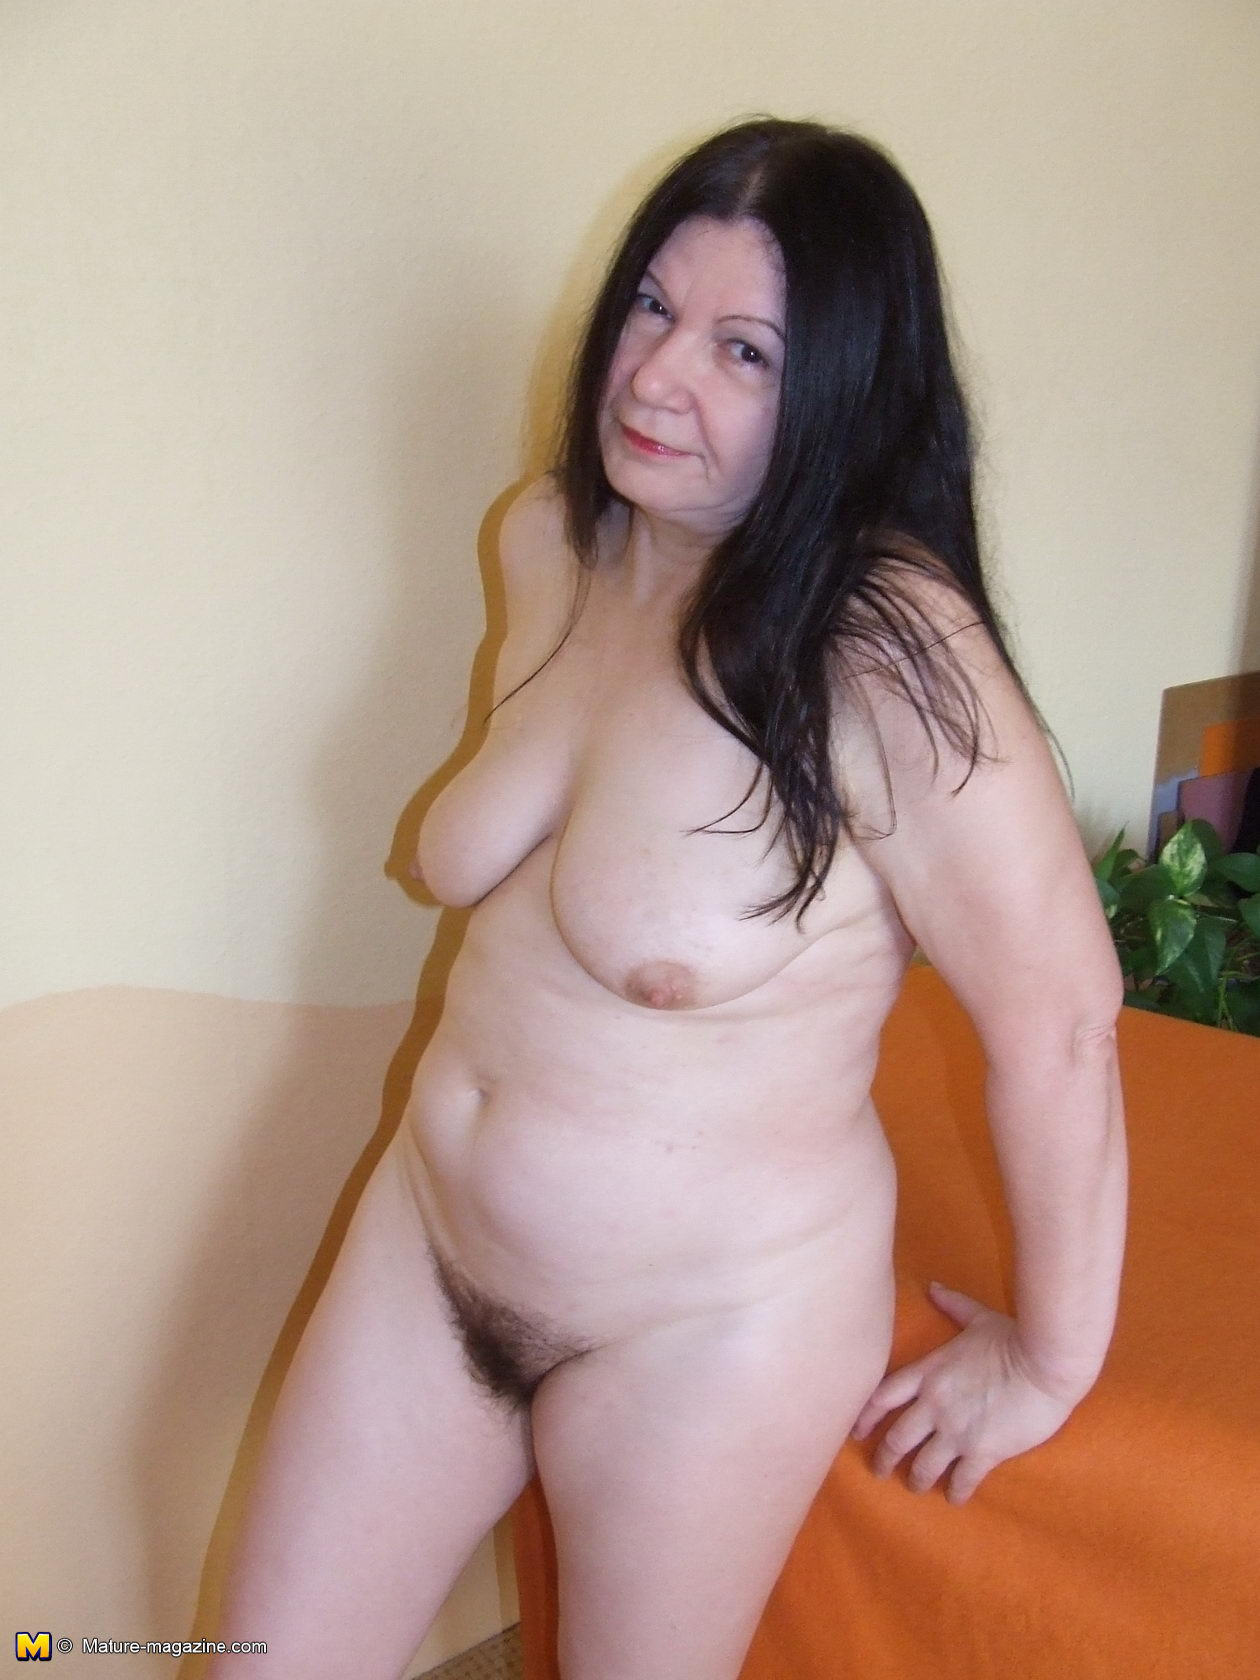 Older mature women hairy pussy images naked